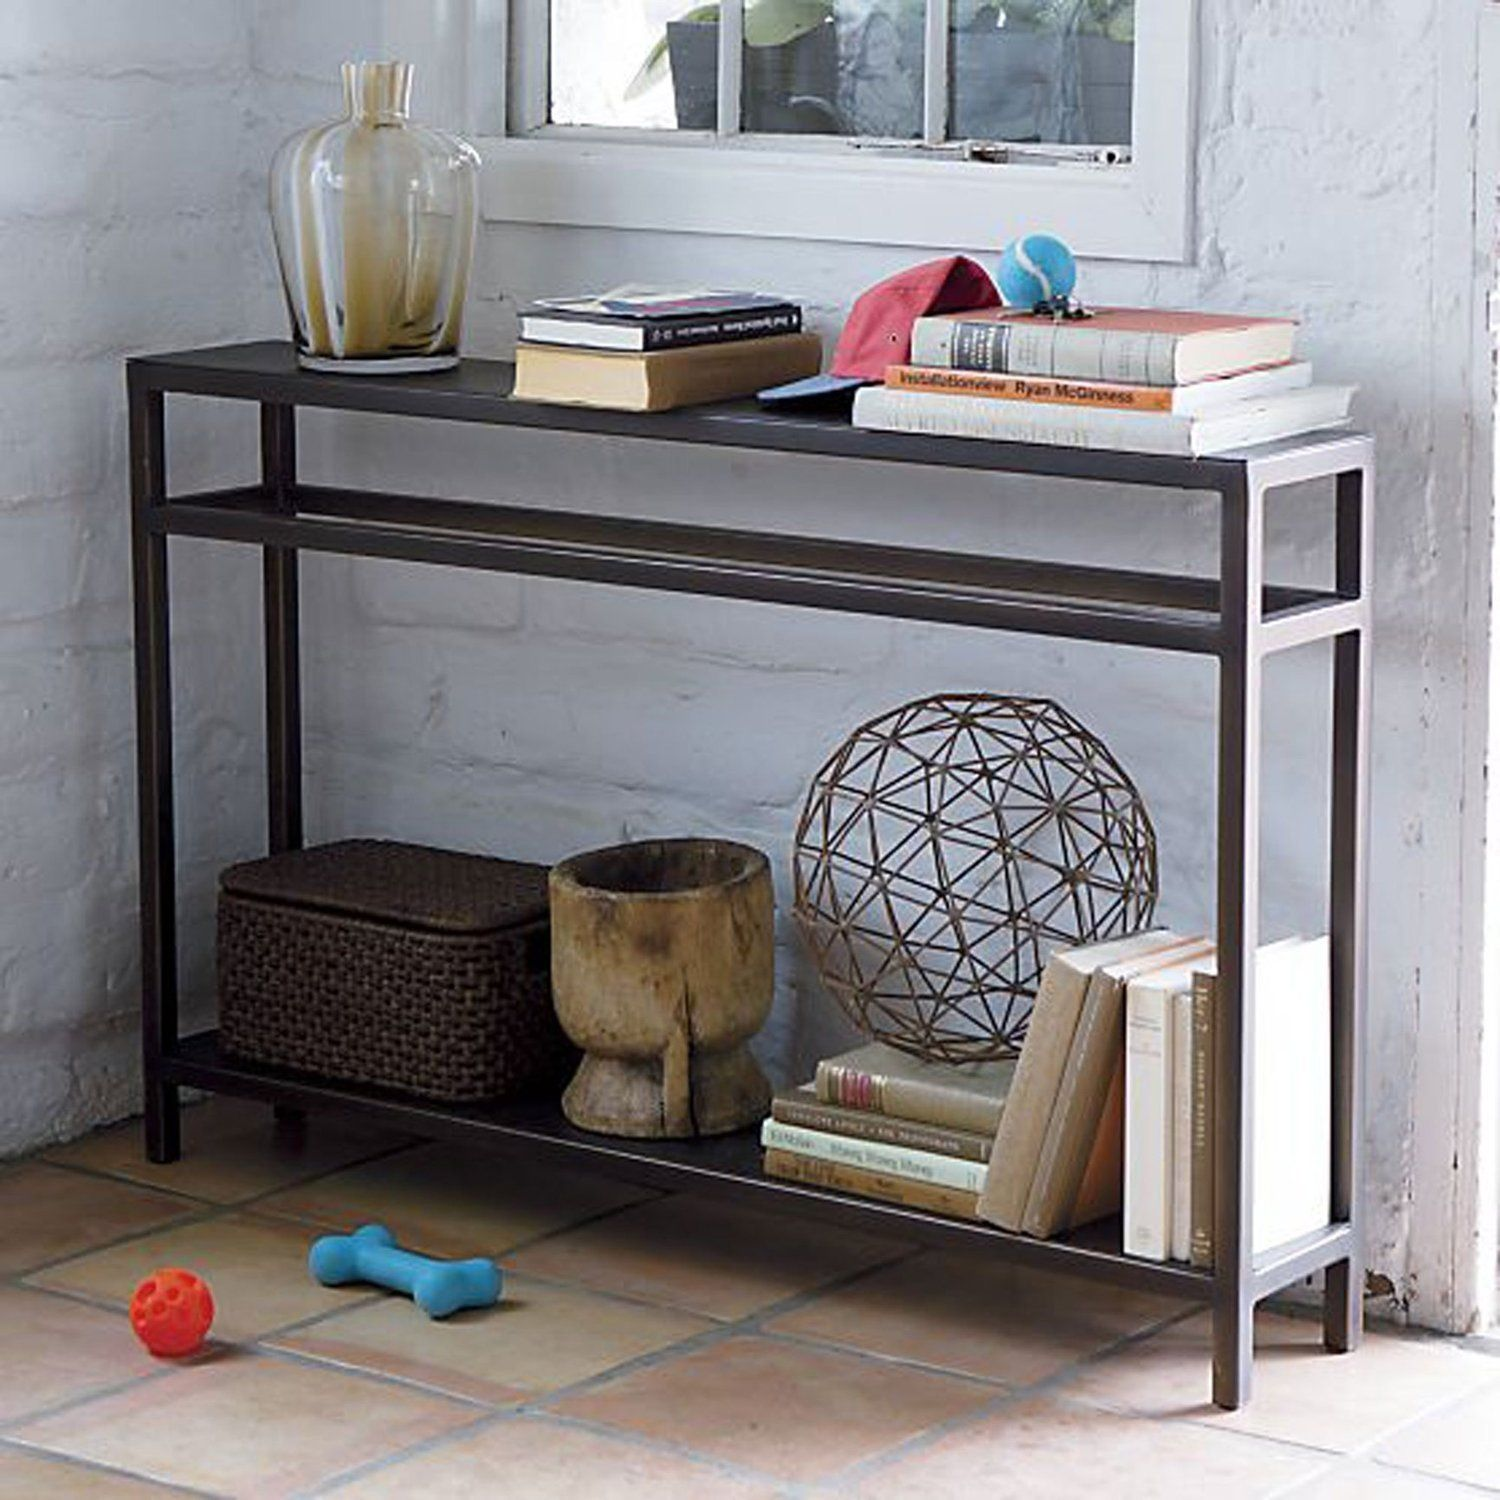 10 Slim Slender Consoles For Small Spaces Narrow Console Table